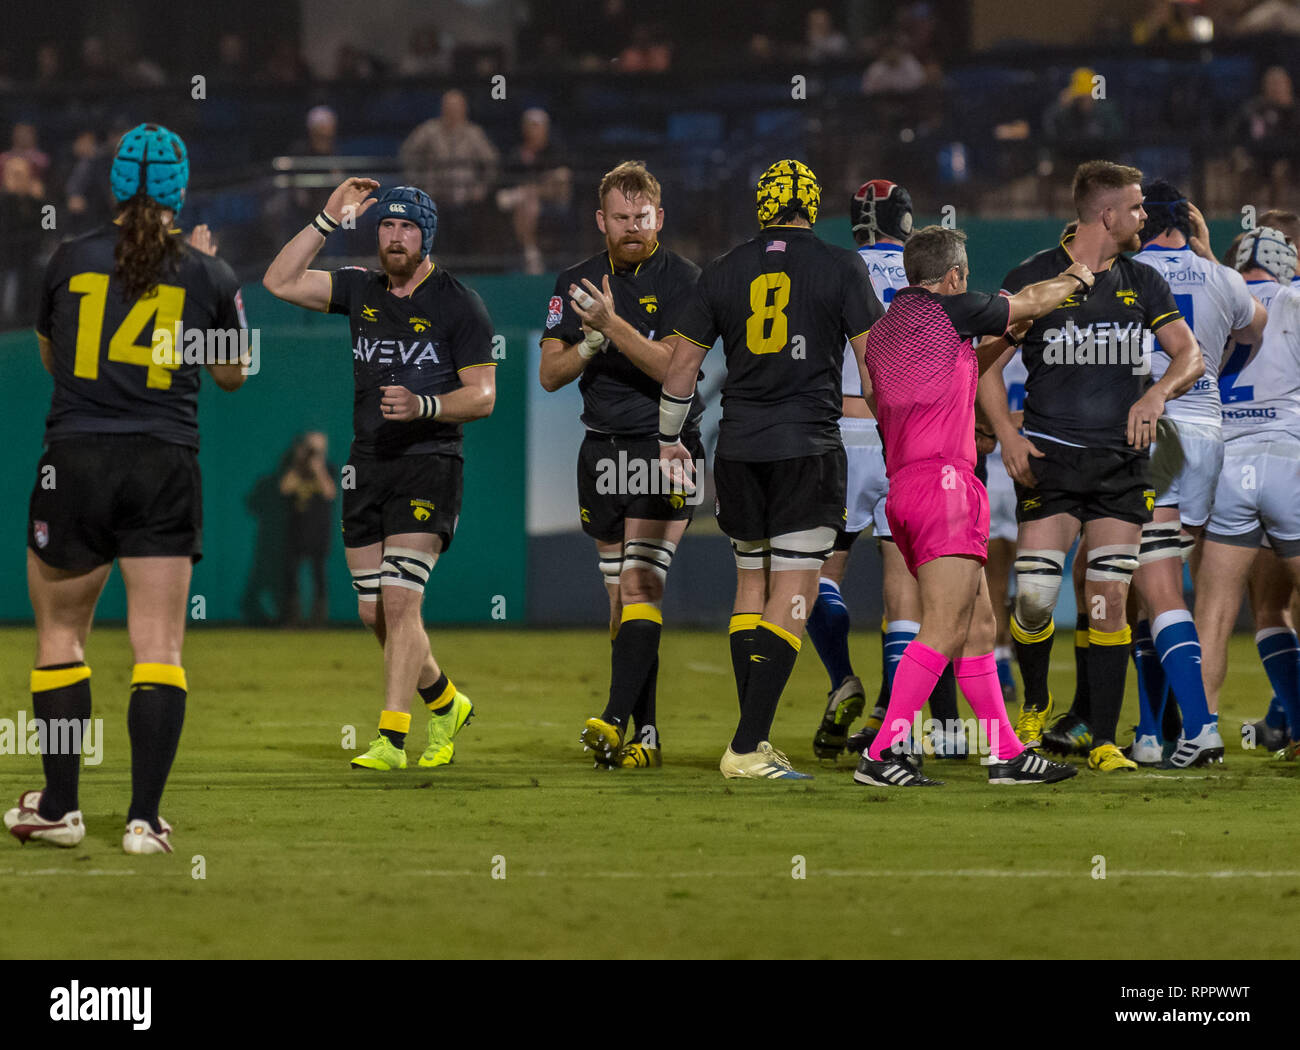 February 22, 2019 Houston SaberCats celebrate after a try